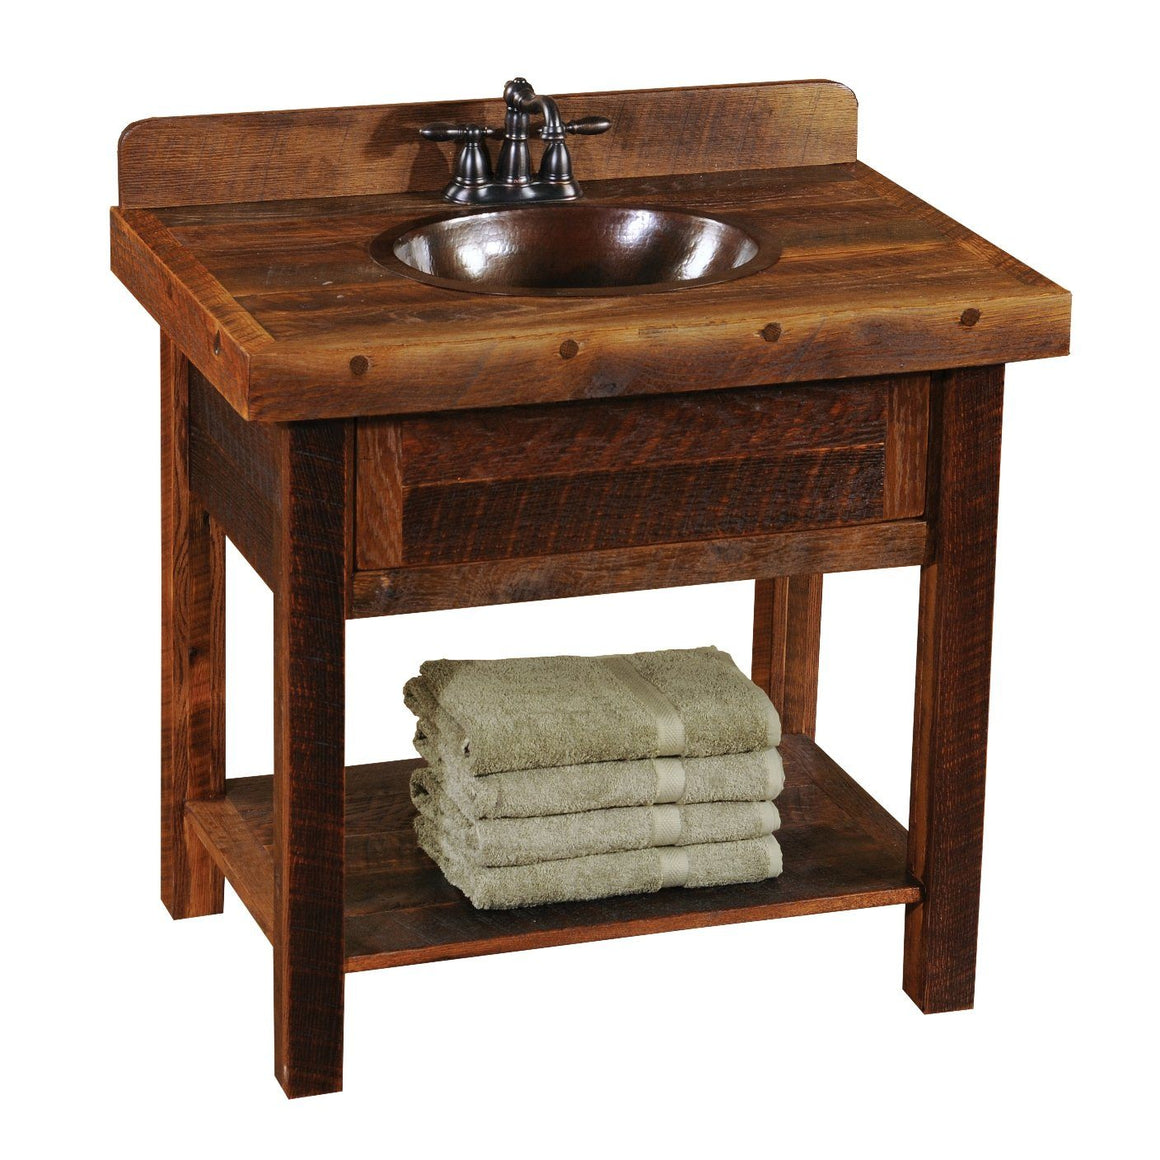 "Barnwood Freestanding Open Vanity with Shelf - without top - 31.5"" - Rustic Deco Incorporated"